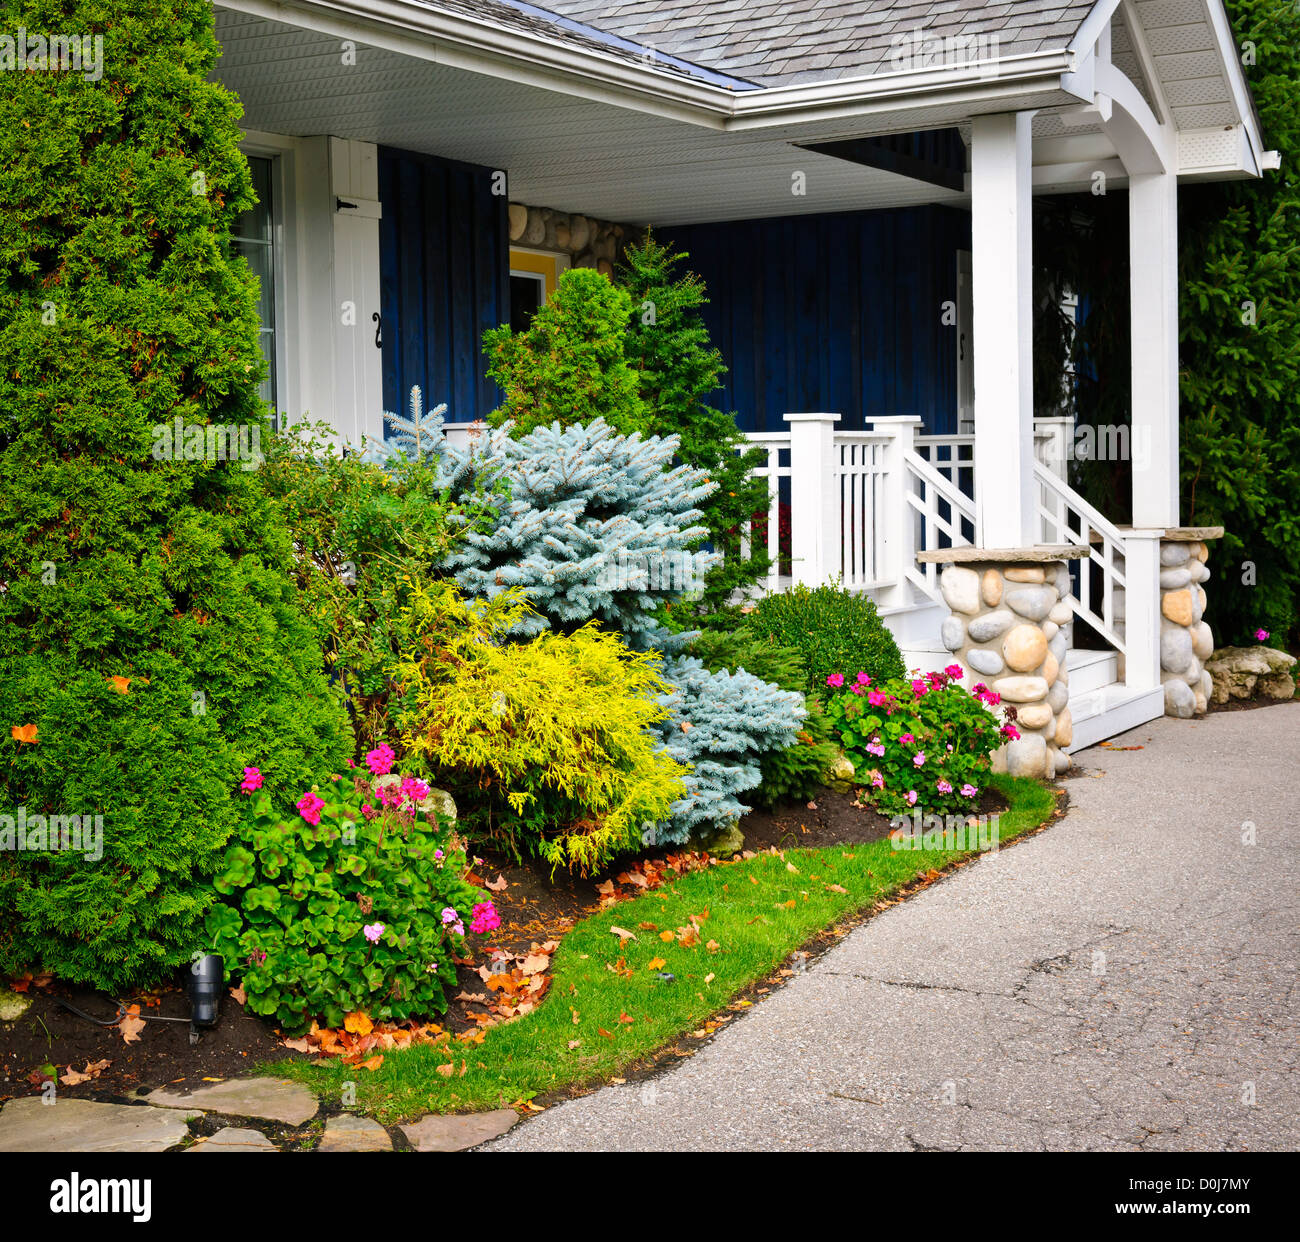 Front entrance of house with garden and porch Stock Photo